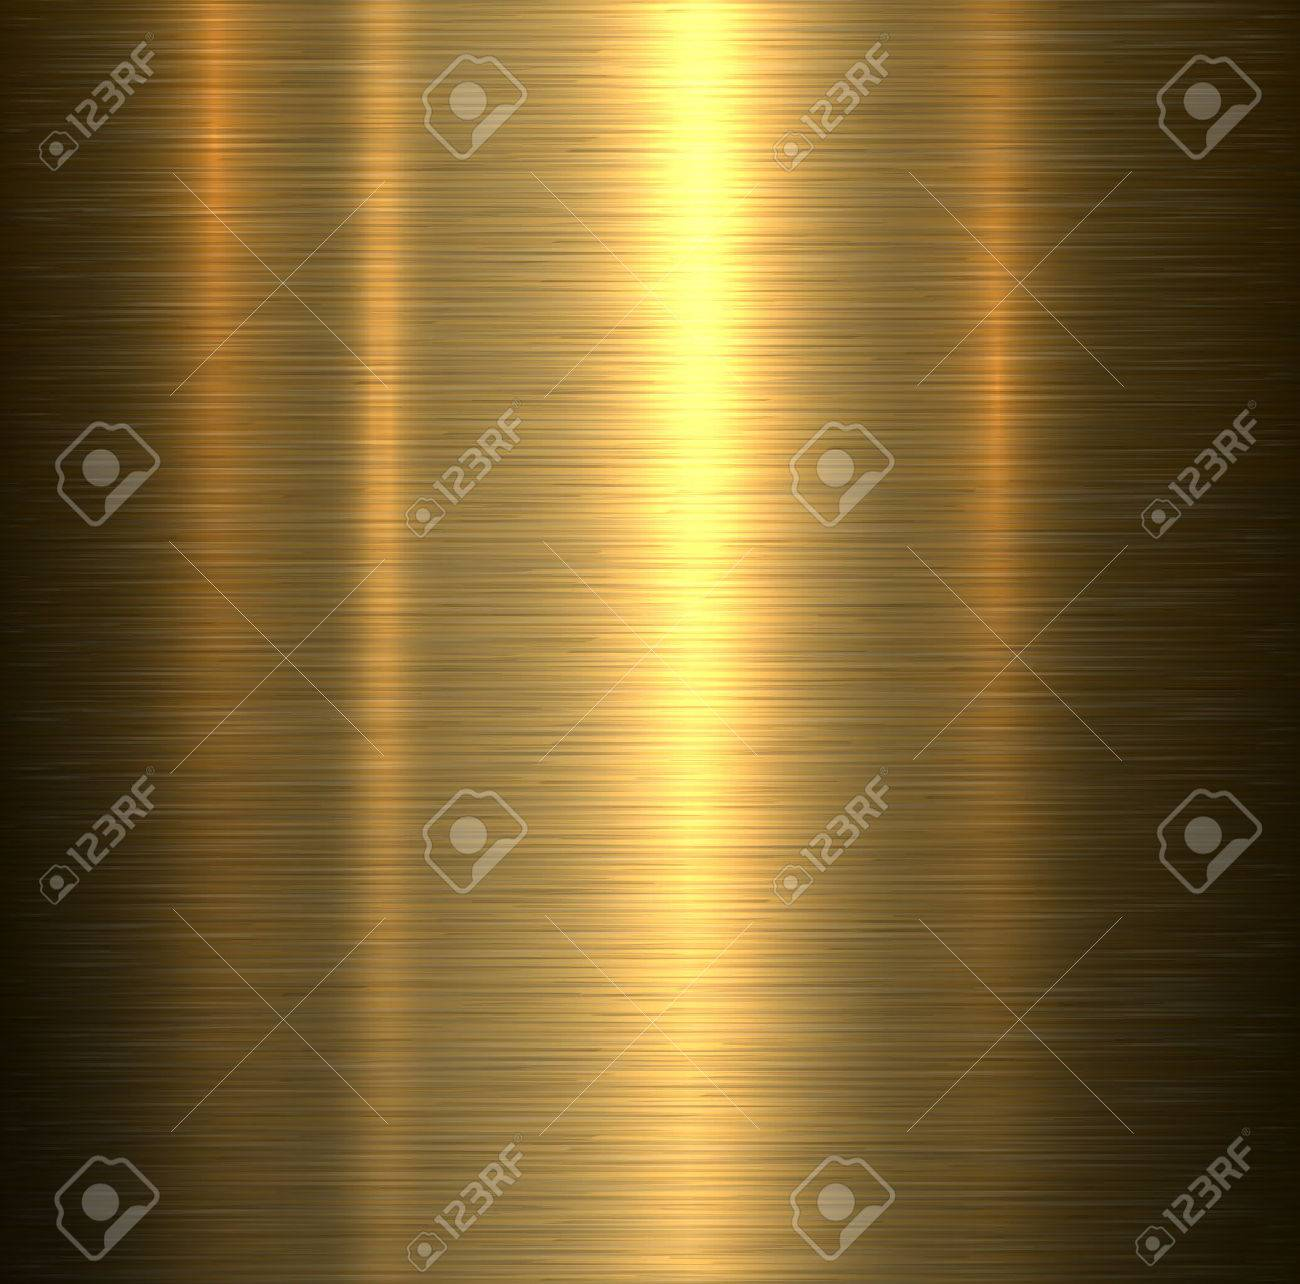 Brushed Brass Texture Brushed Metallic Texture